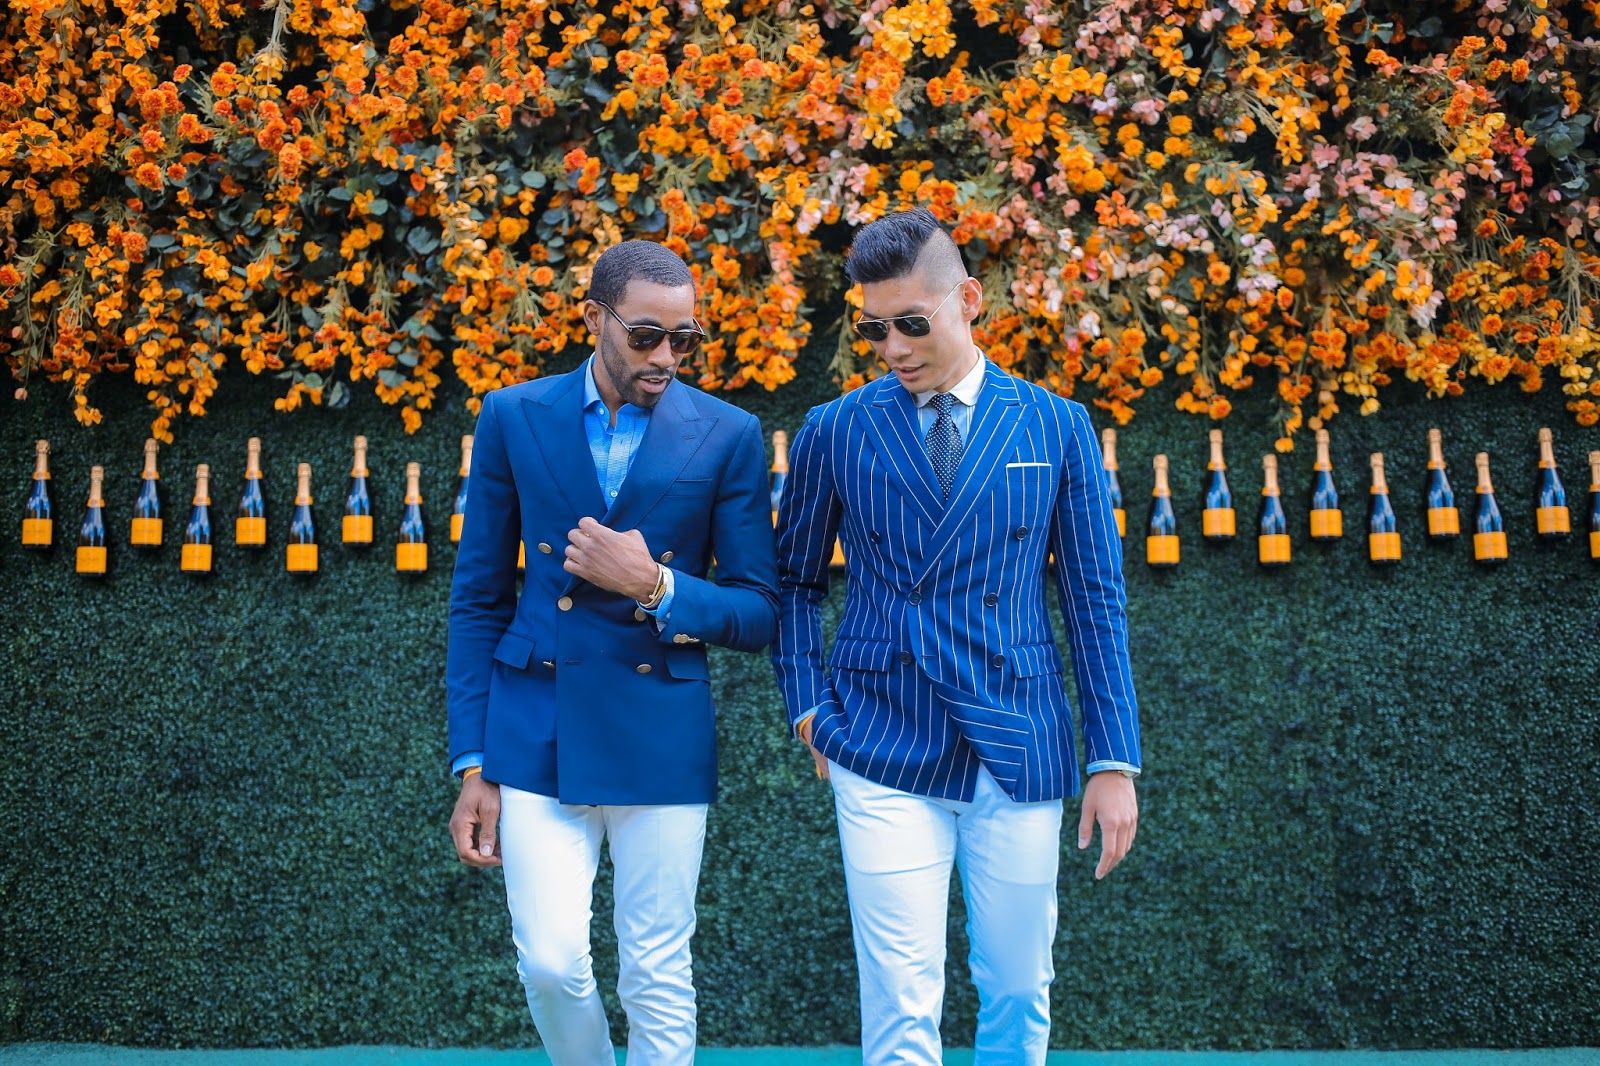 polo match outfit inspiration for men